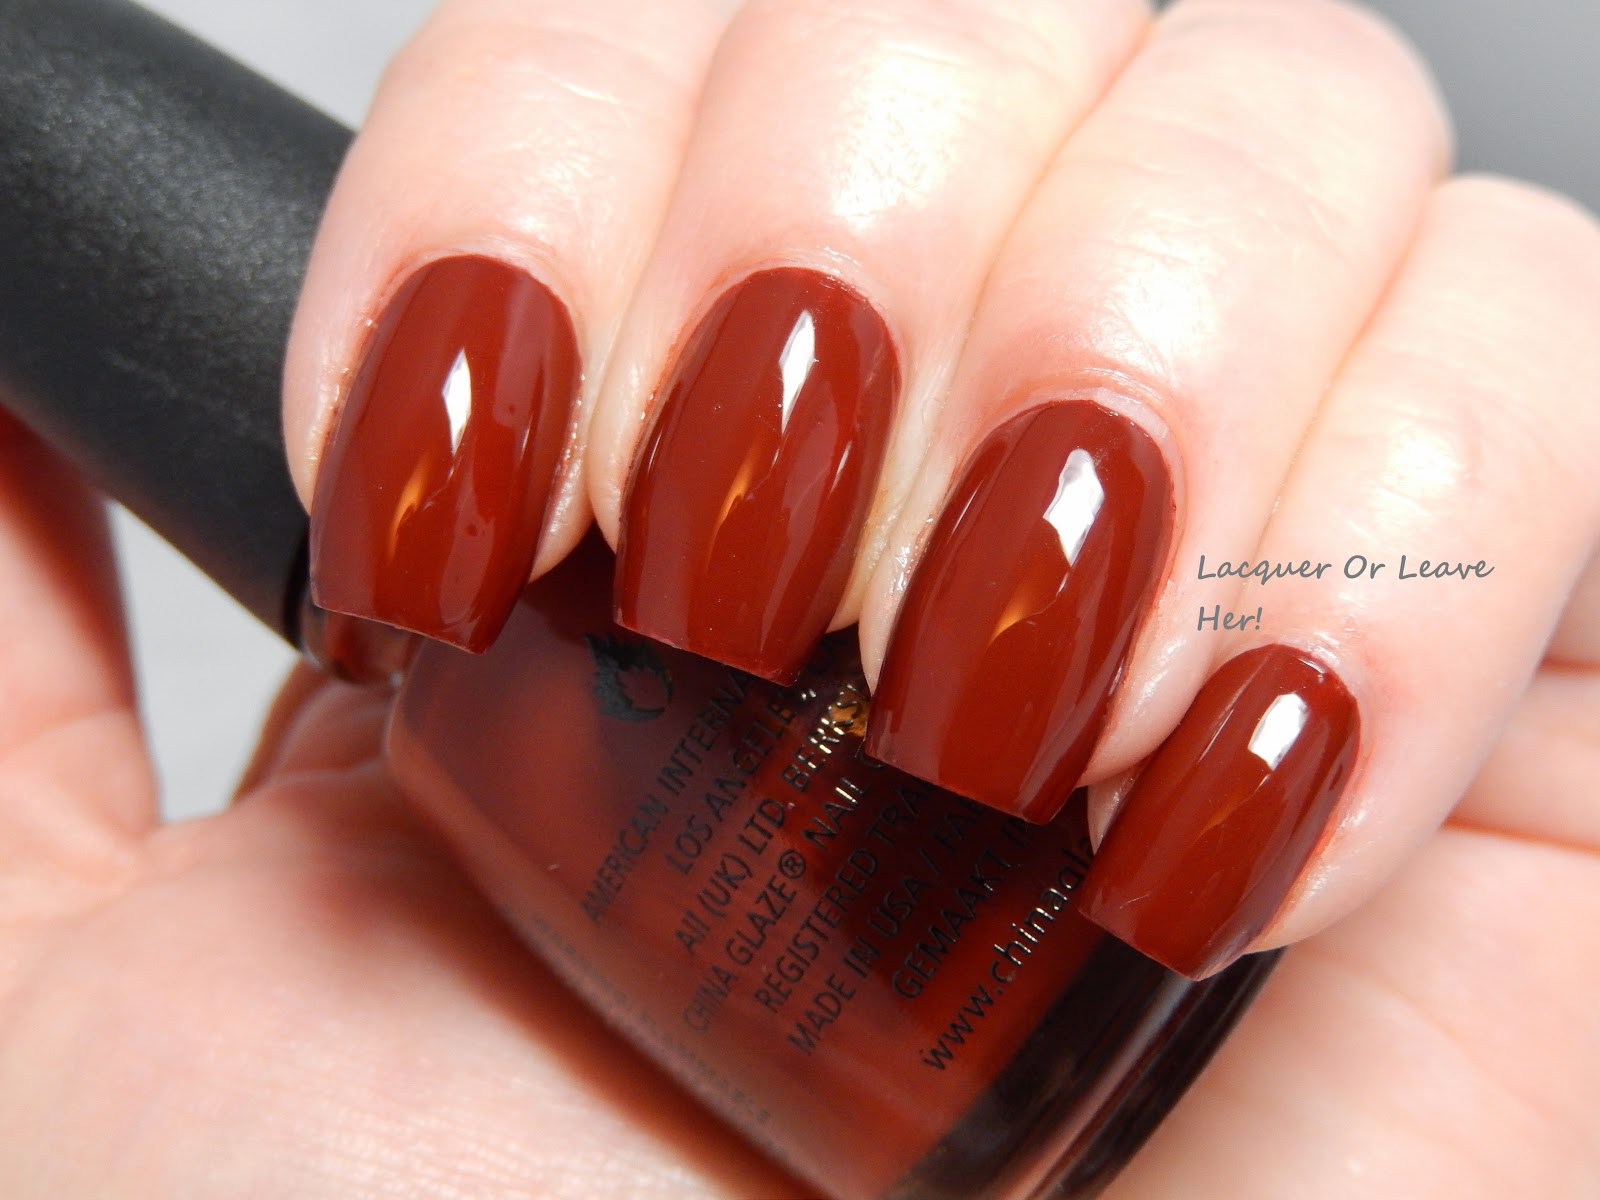 China Glaze Brownstone